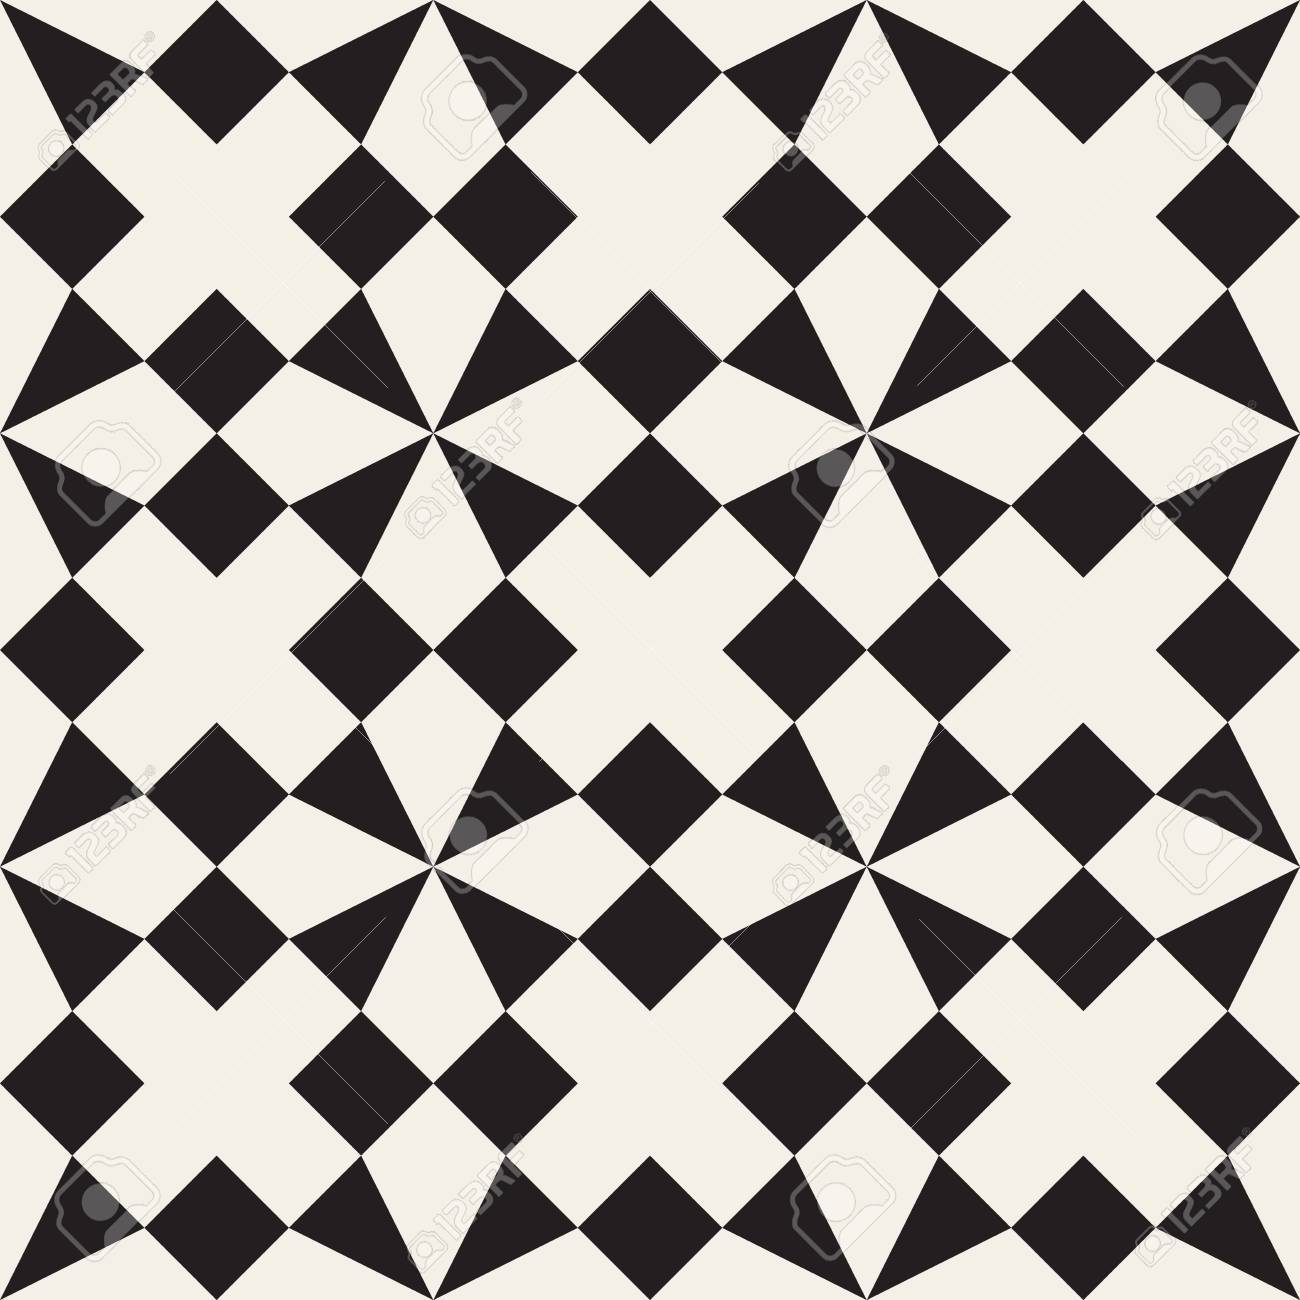 Seamless Black And White Triangle Square Geometric Tessellation Pattern Abstract Background Stock Vector